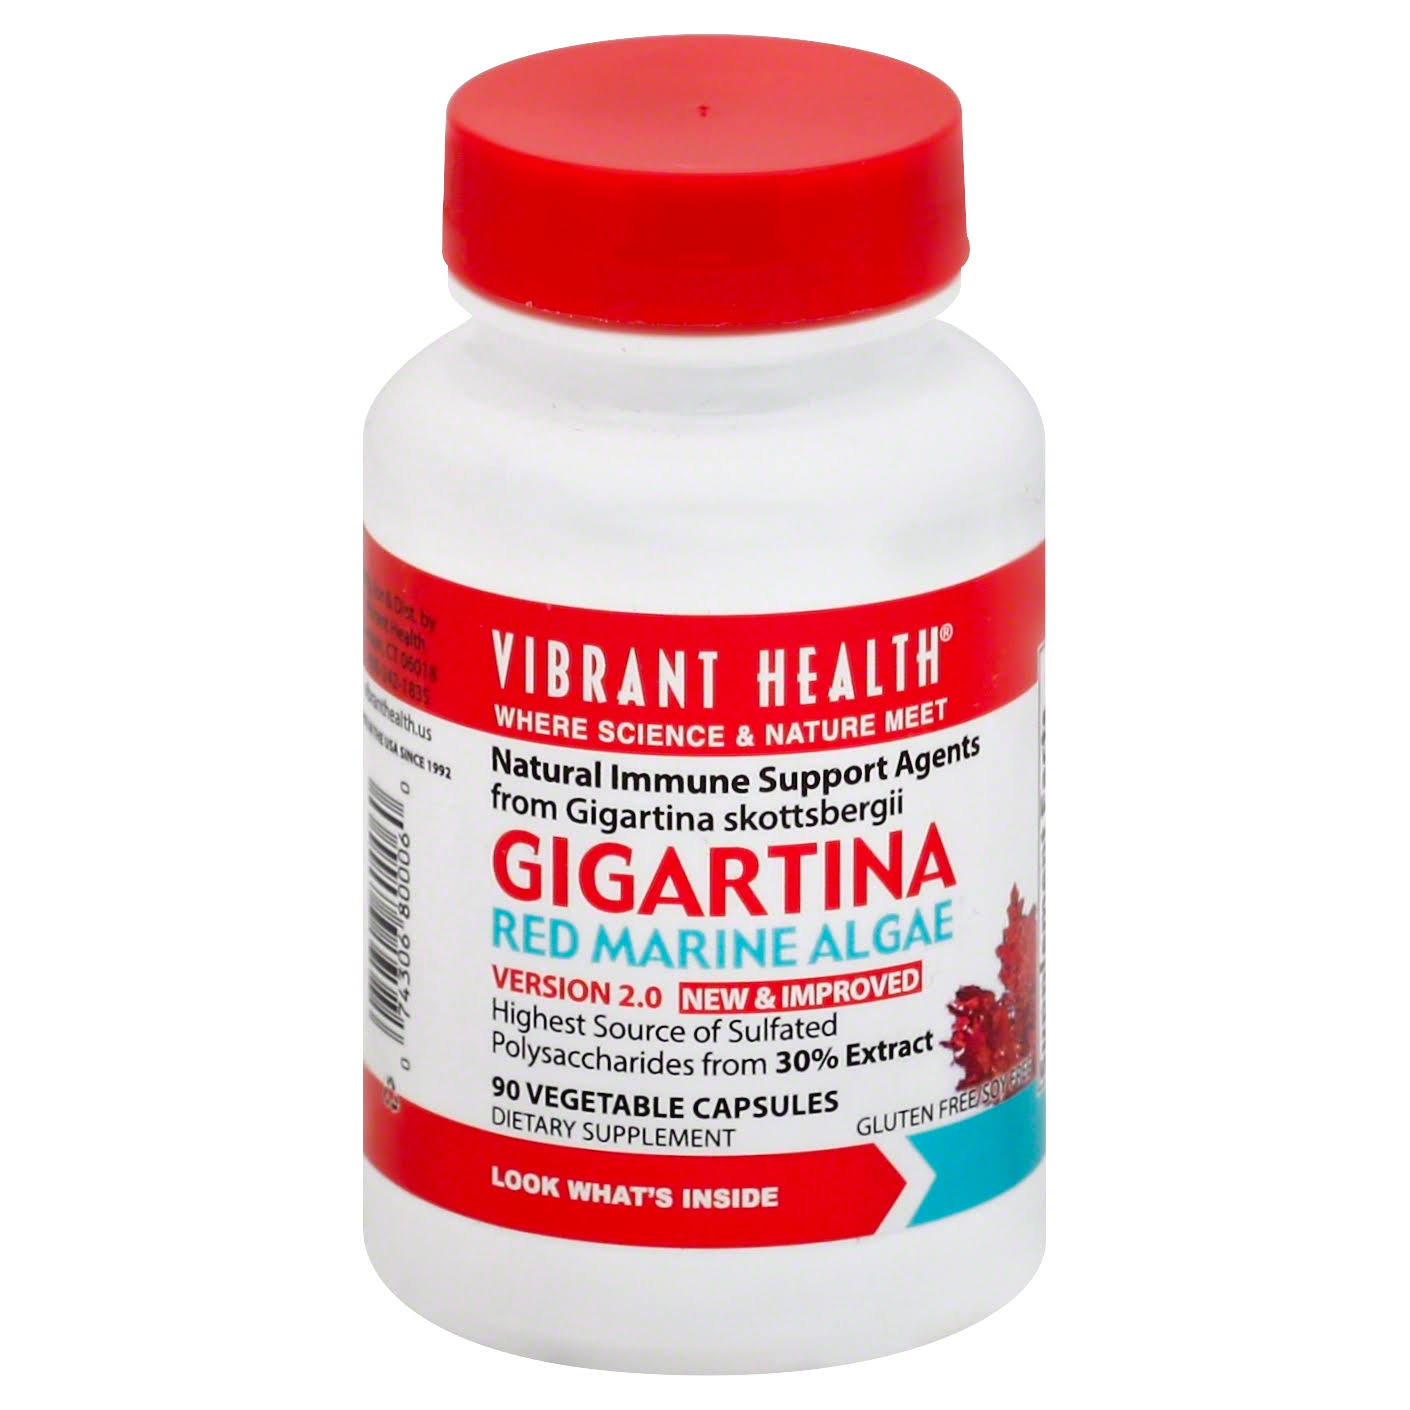 Vibrant Health Gigartina Red Marine Algae - 90 Vegetable Capsules